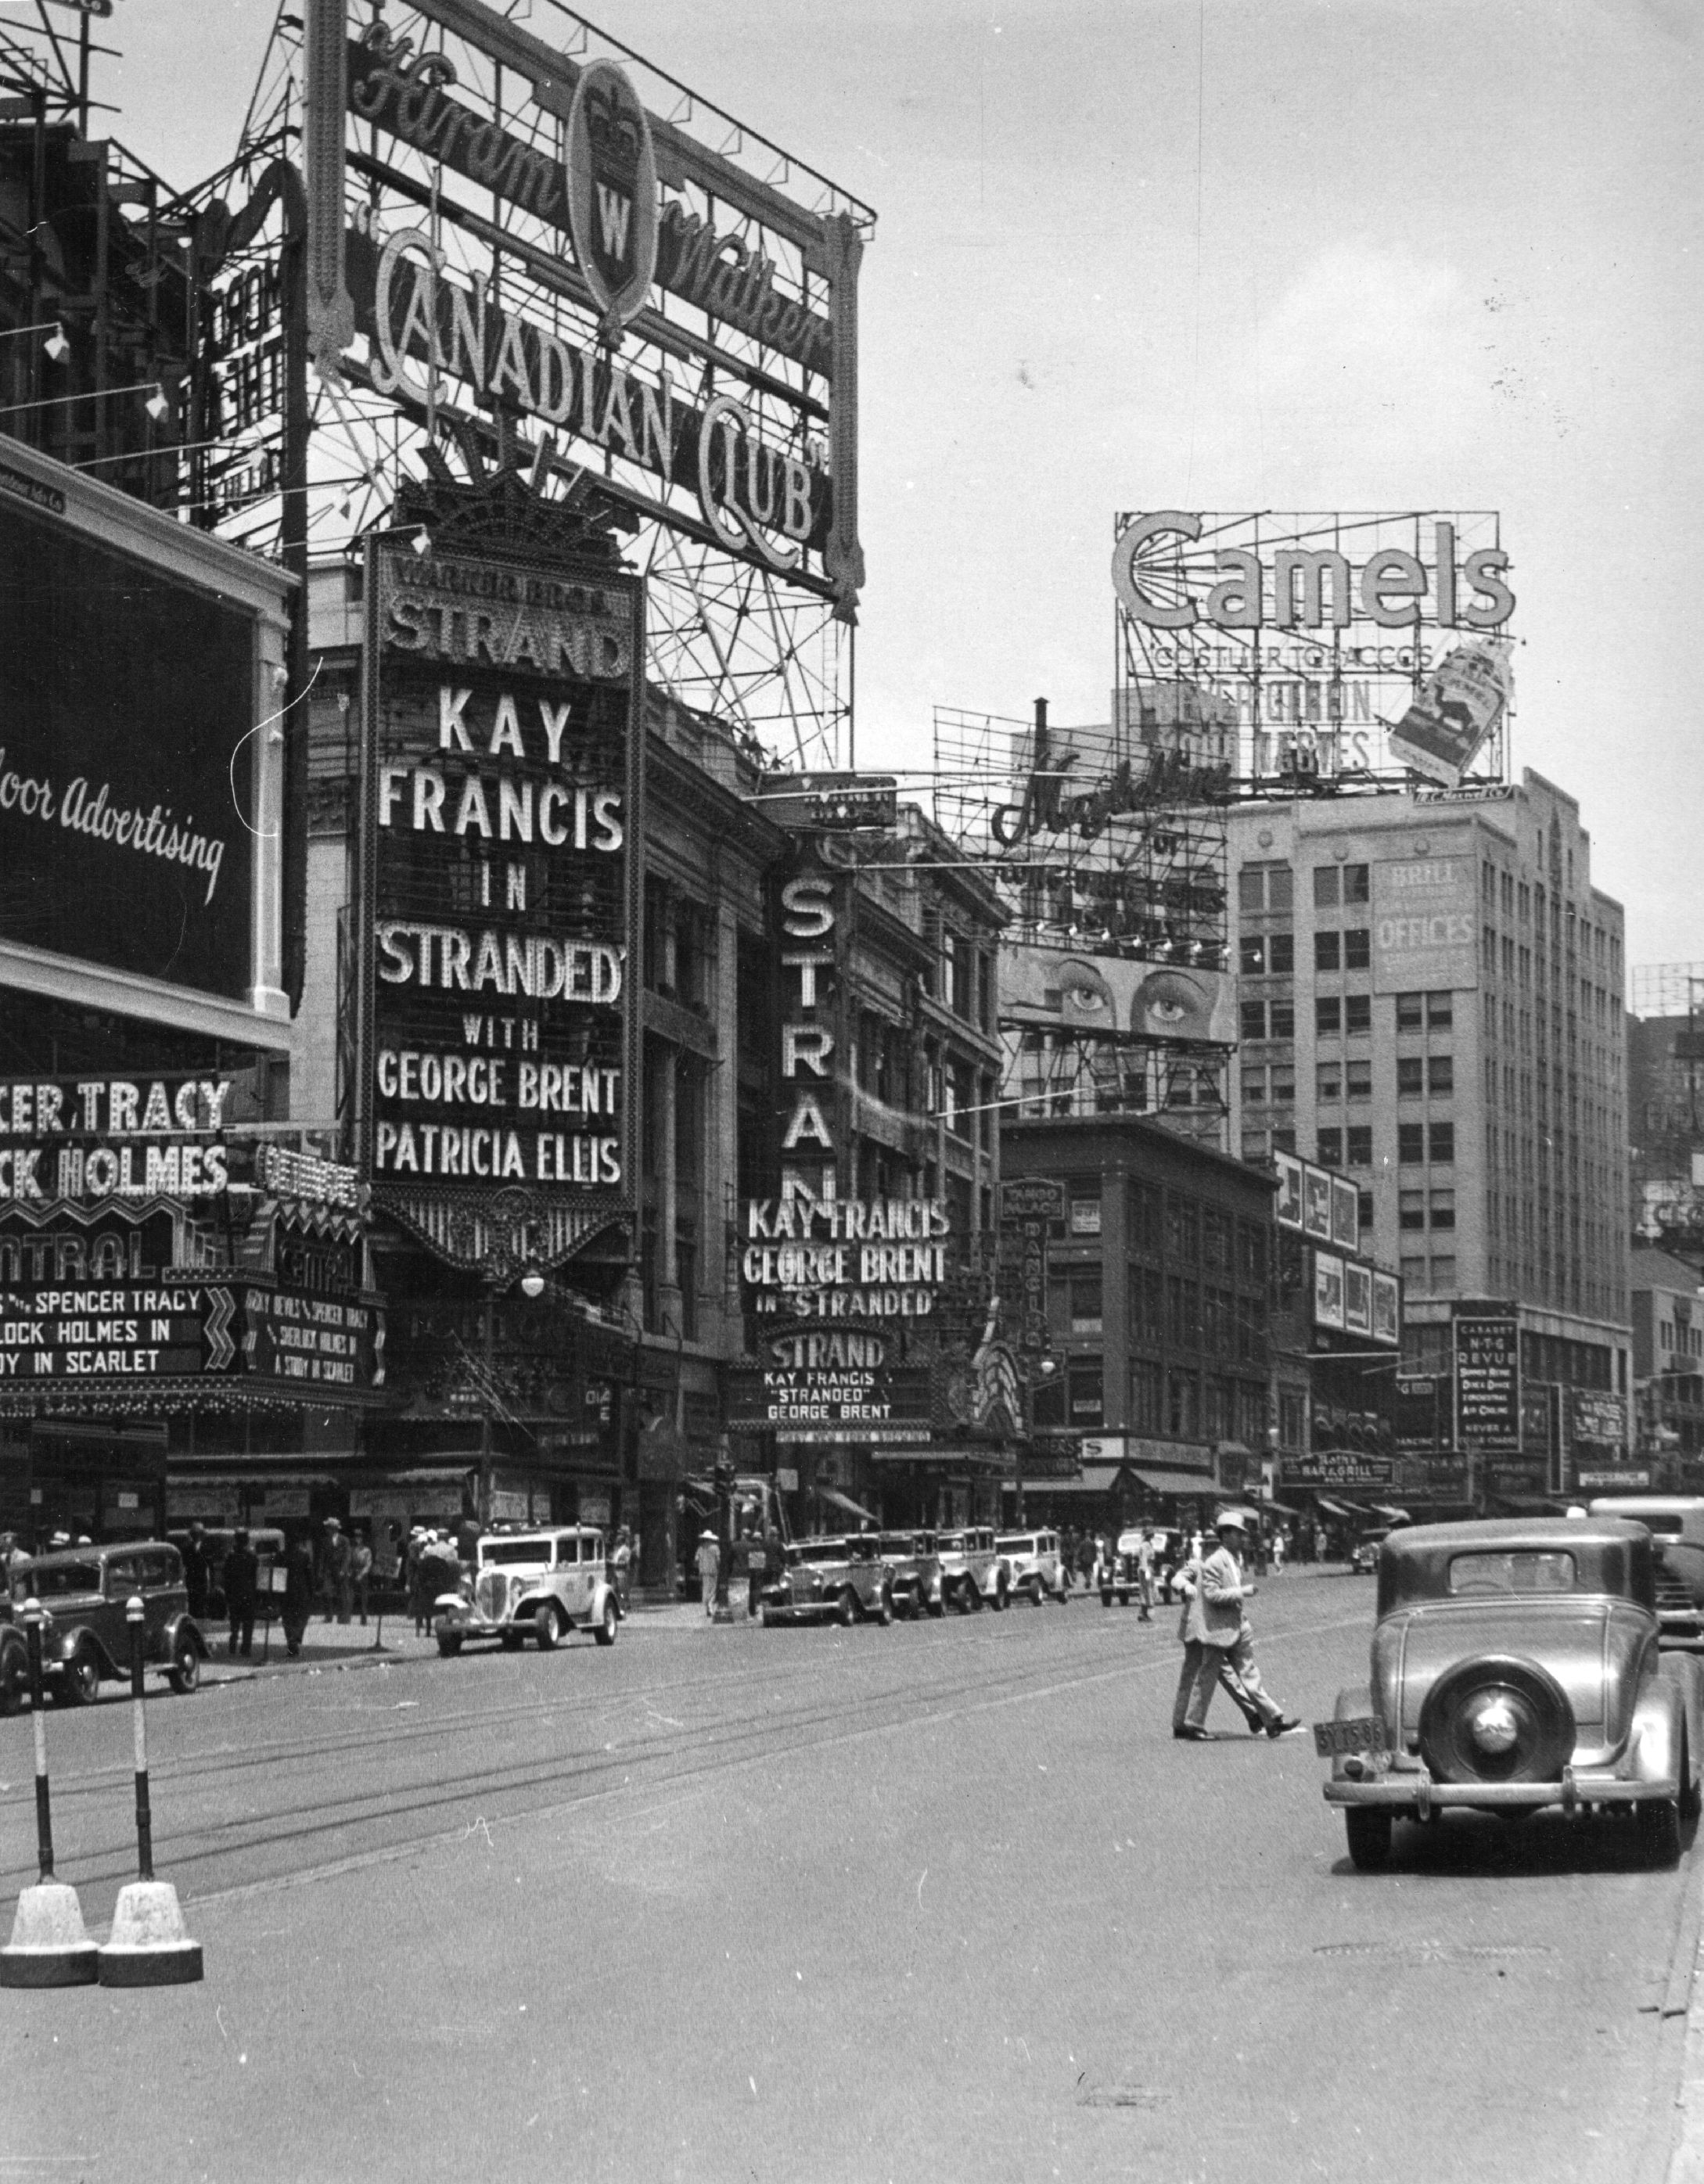 The Strand Cinema on Broadway New York in 1925 3288700 Getty